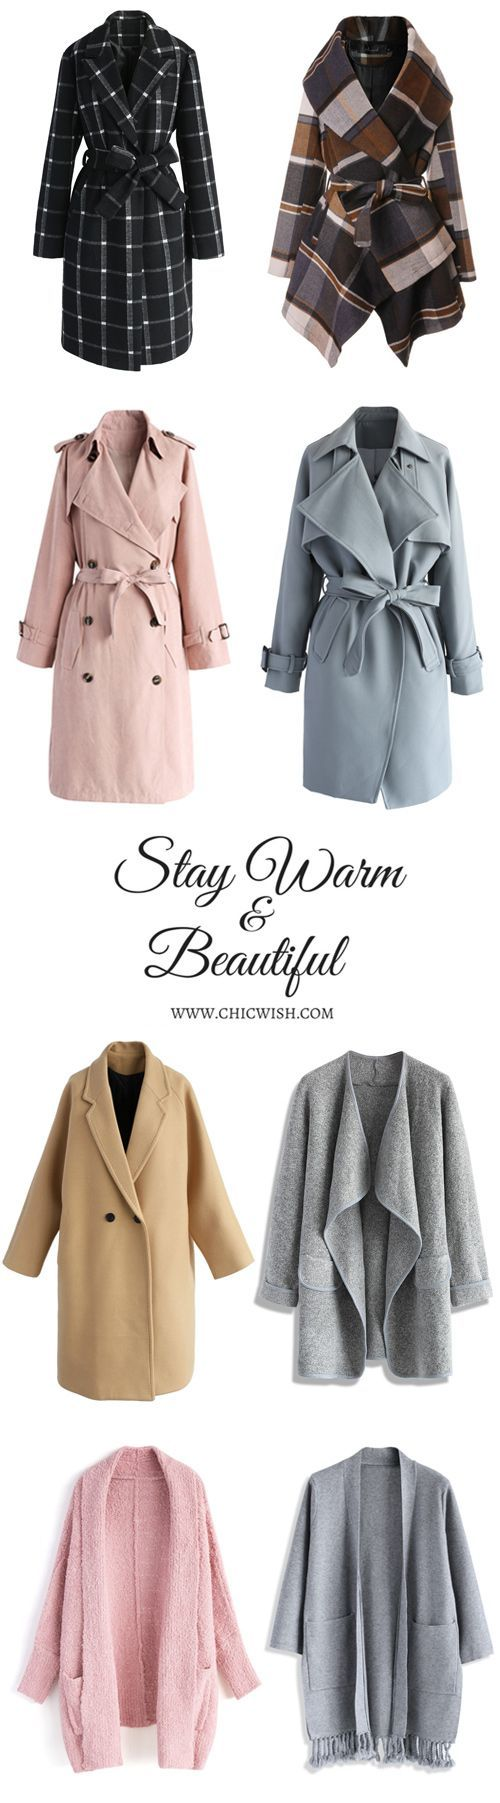 Discover more winter coats at www.chicwish.com/